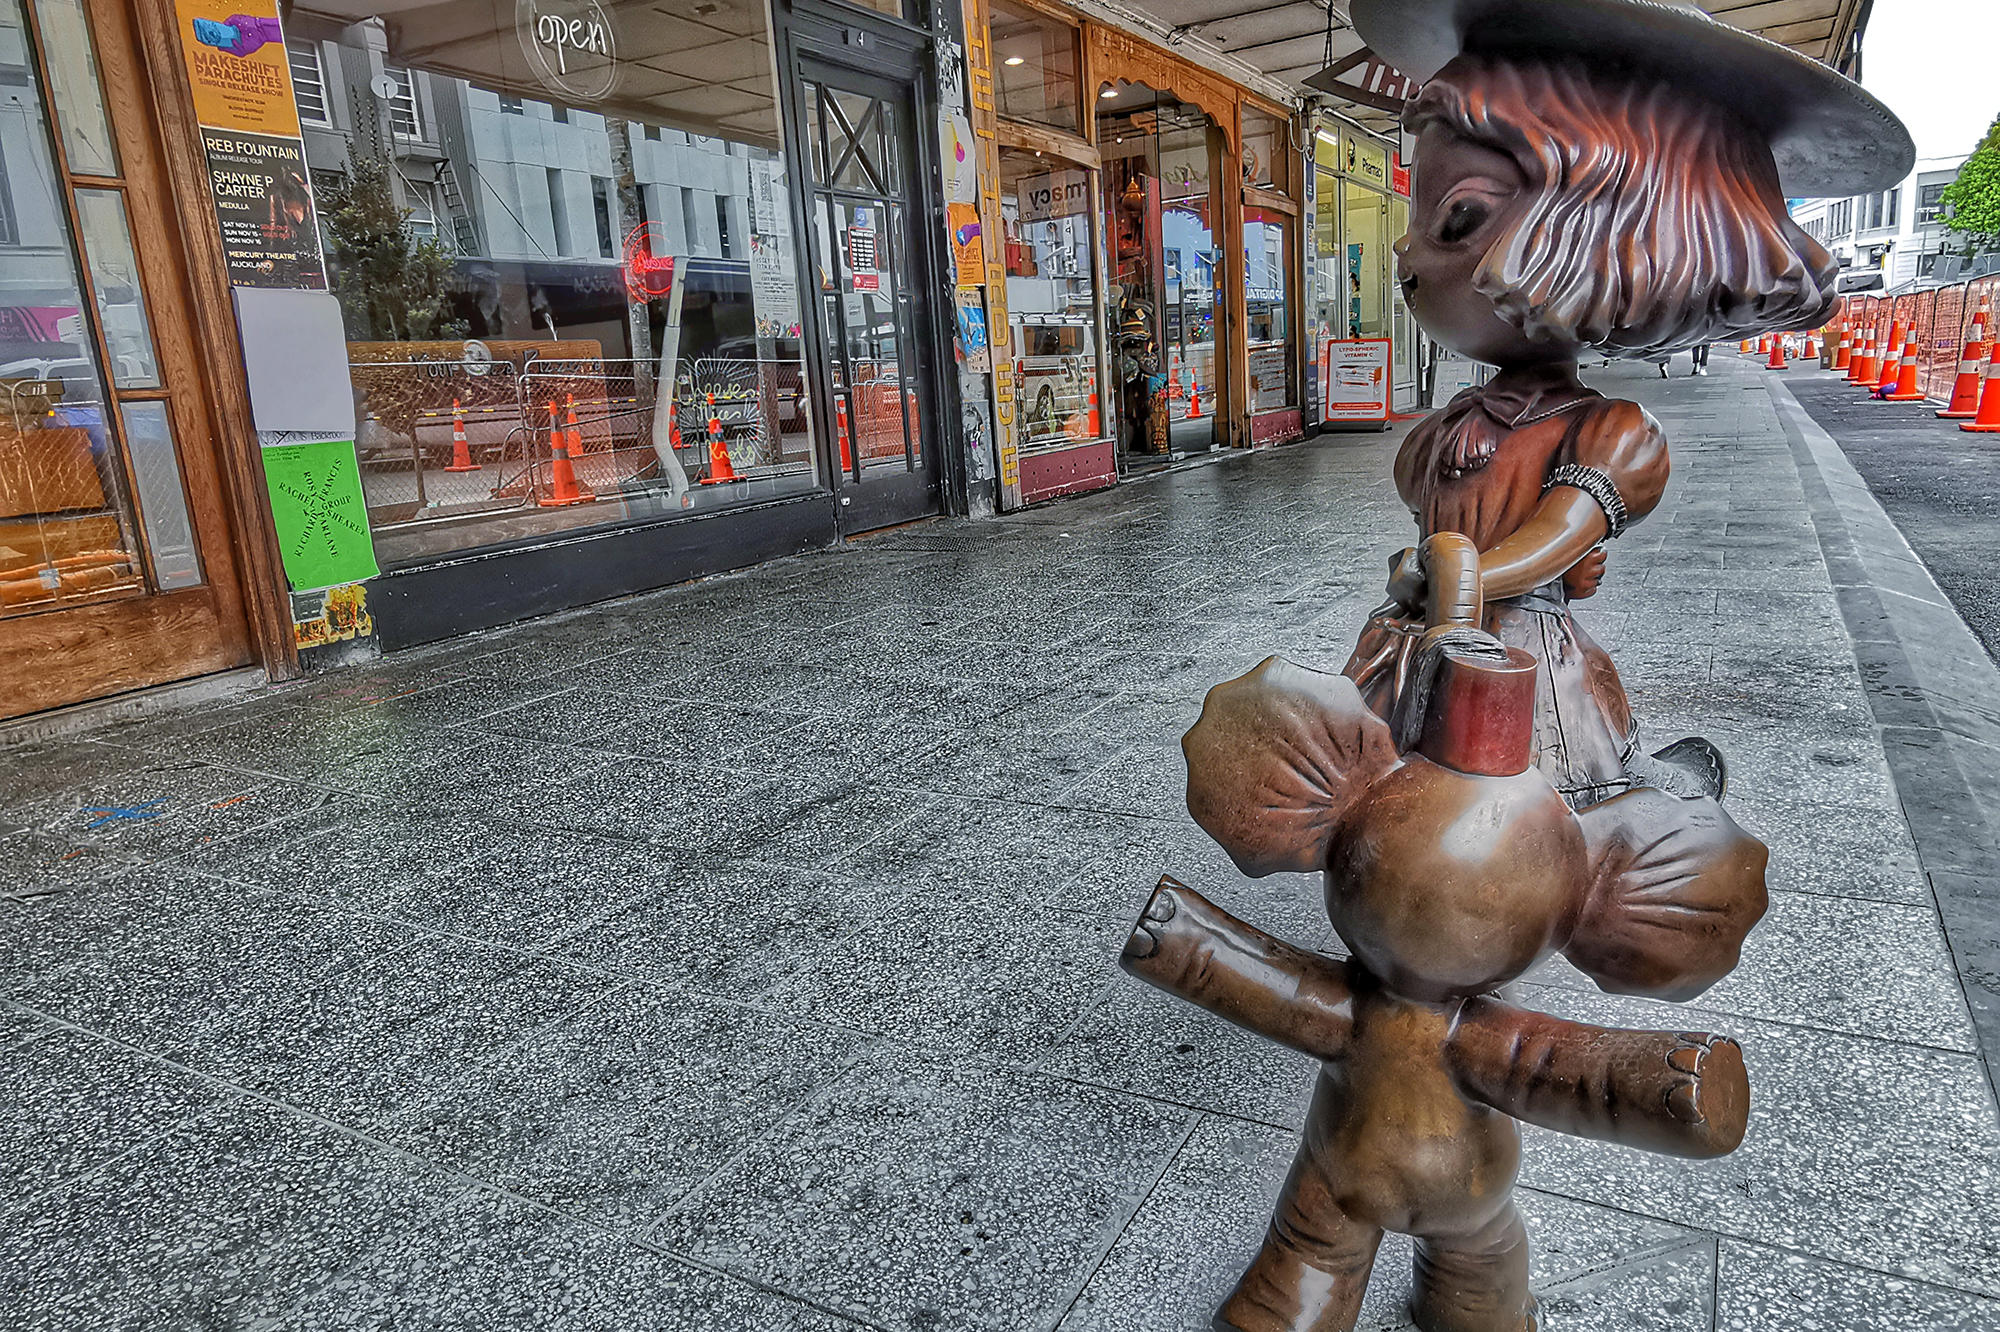 Bronze figurine of a girl in vintage clothes and hat dancing with a baby elephant set in streetscape